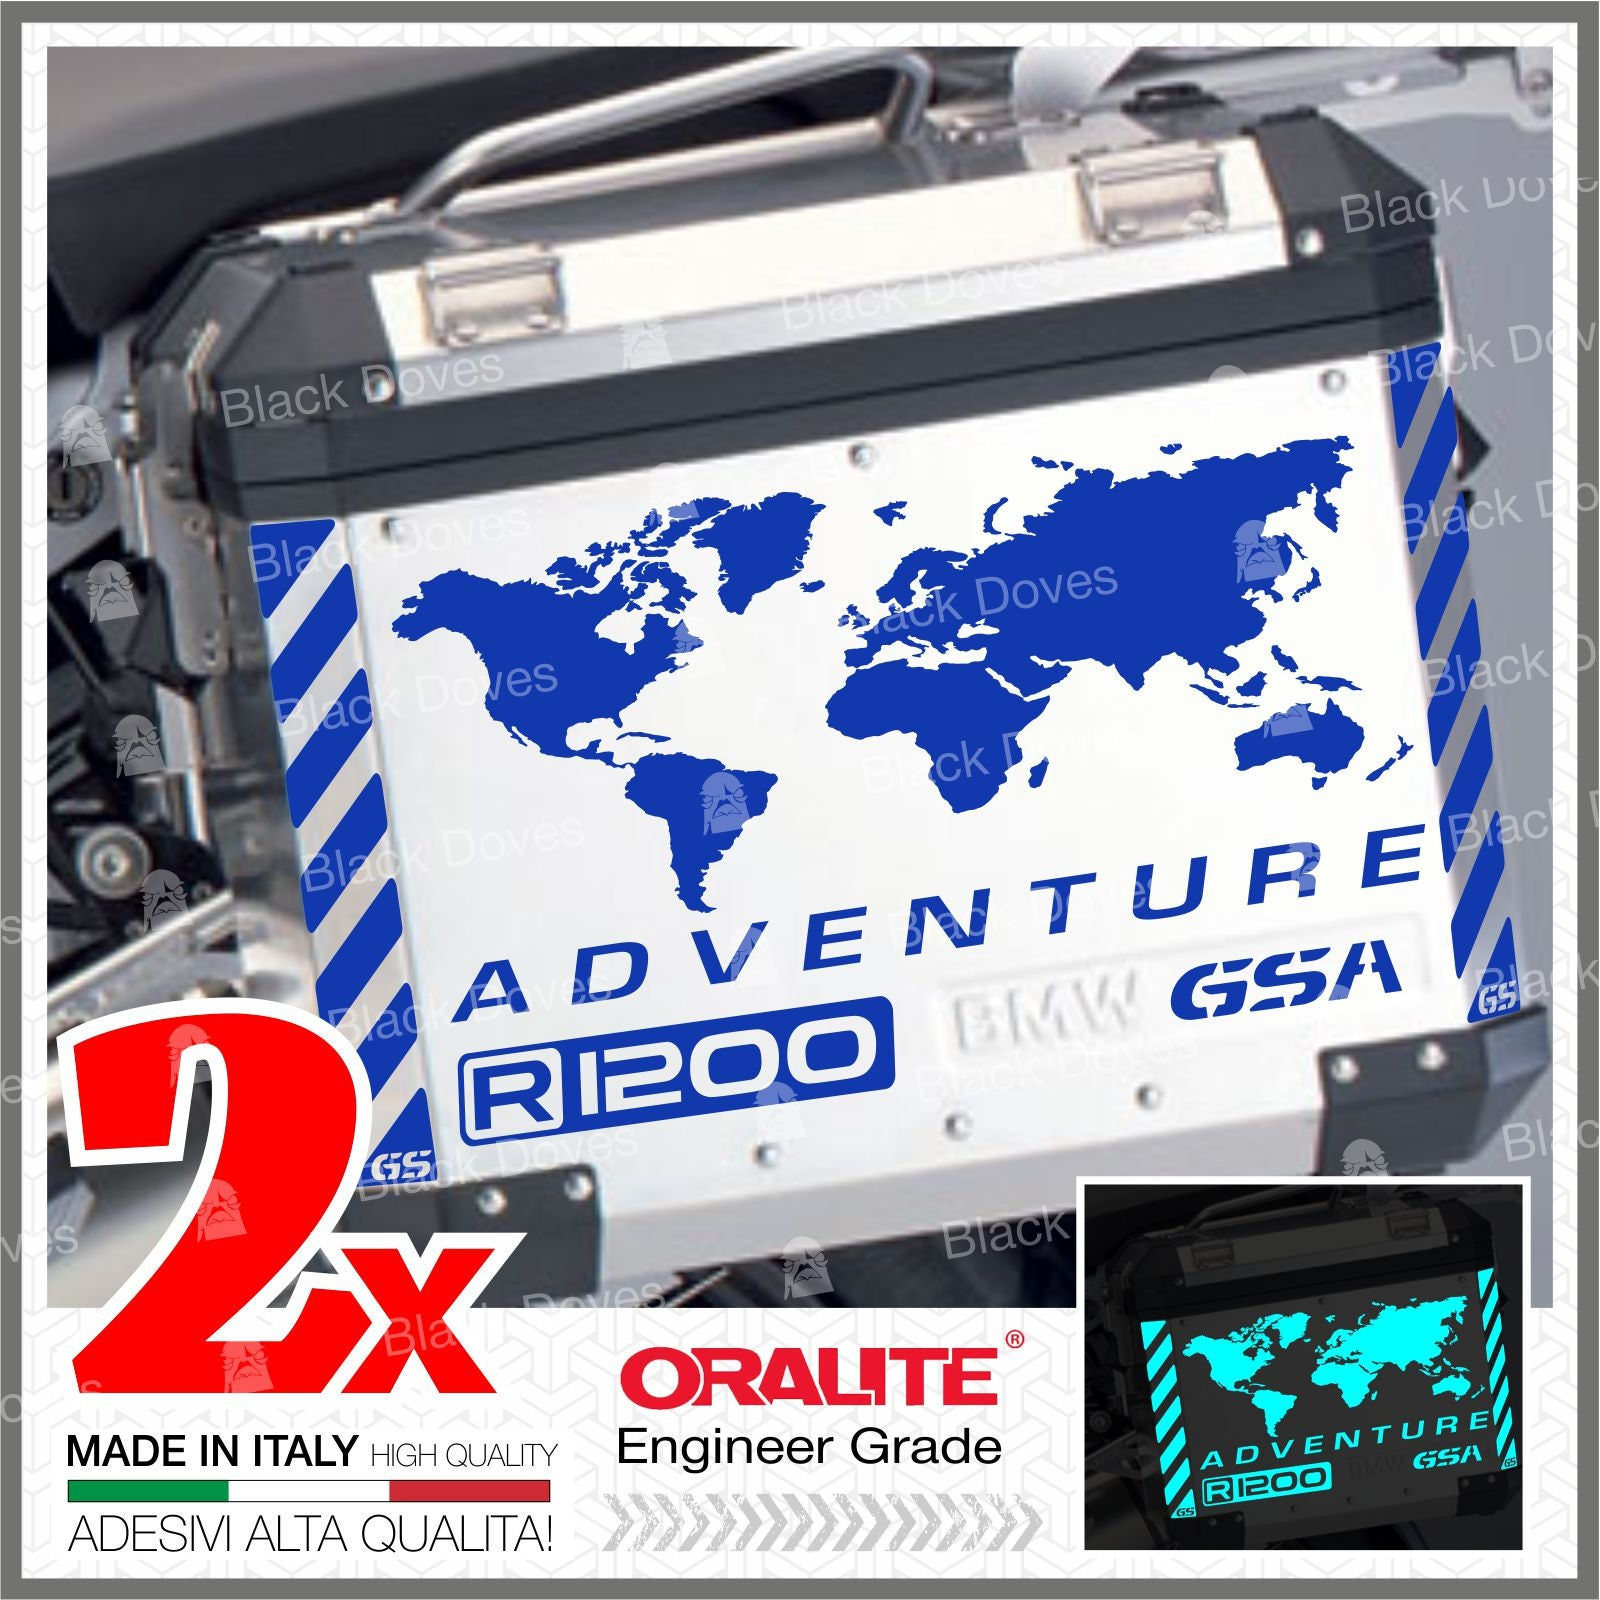 10x R1200GS Reflective BMW ADVENTURE stickers Adhesives Pegatina  autocollant Touratech